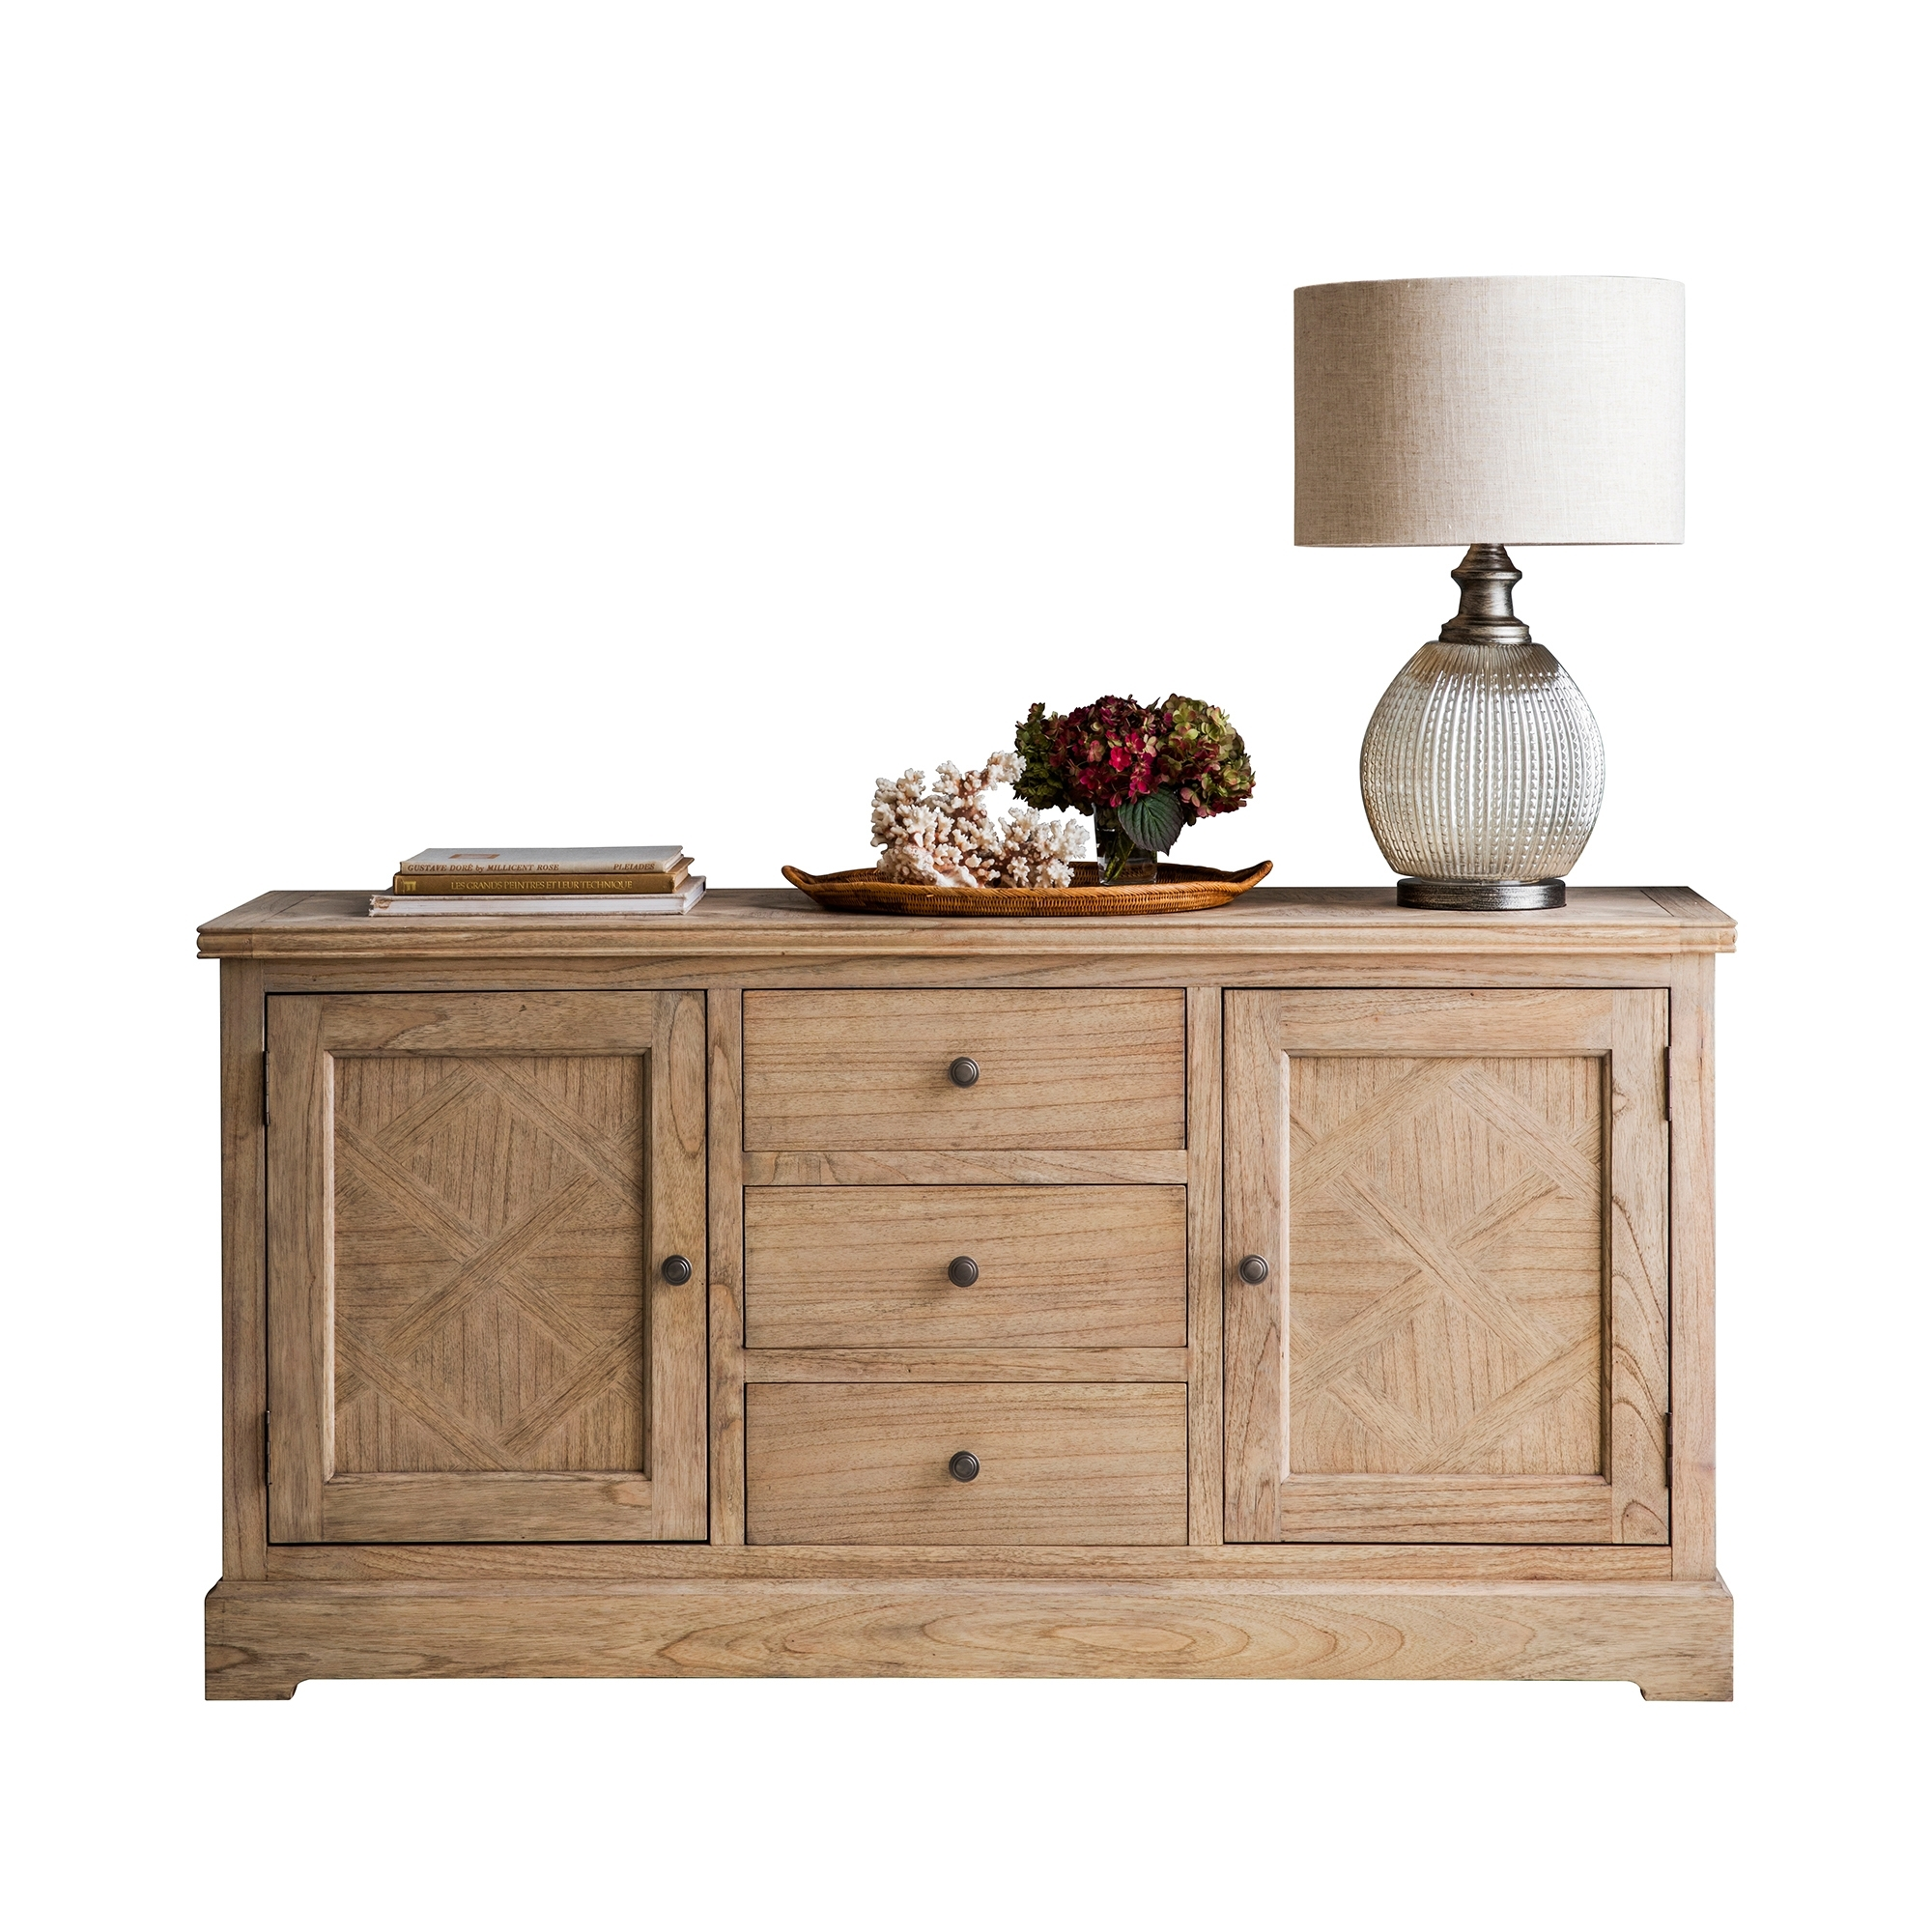 Sheffield Ash Wood Parquet Sideboard | Temple & Webster Pertaining To 2017 Parquet Sideboards (#18 of 20)